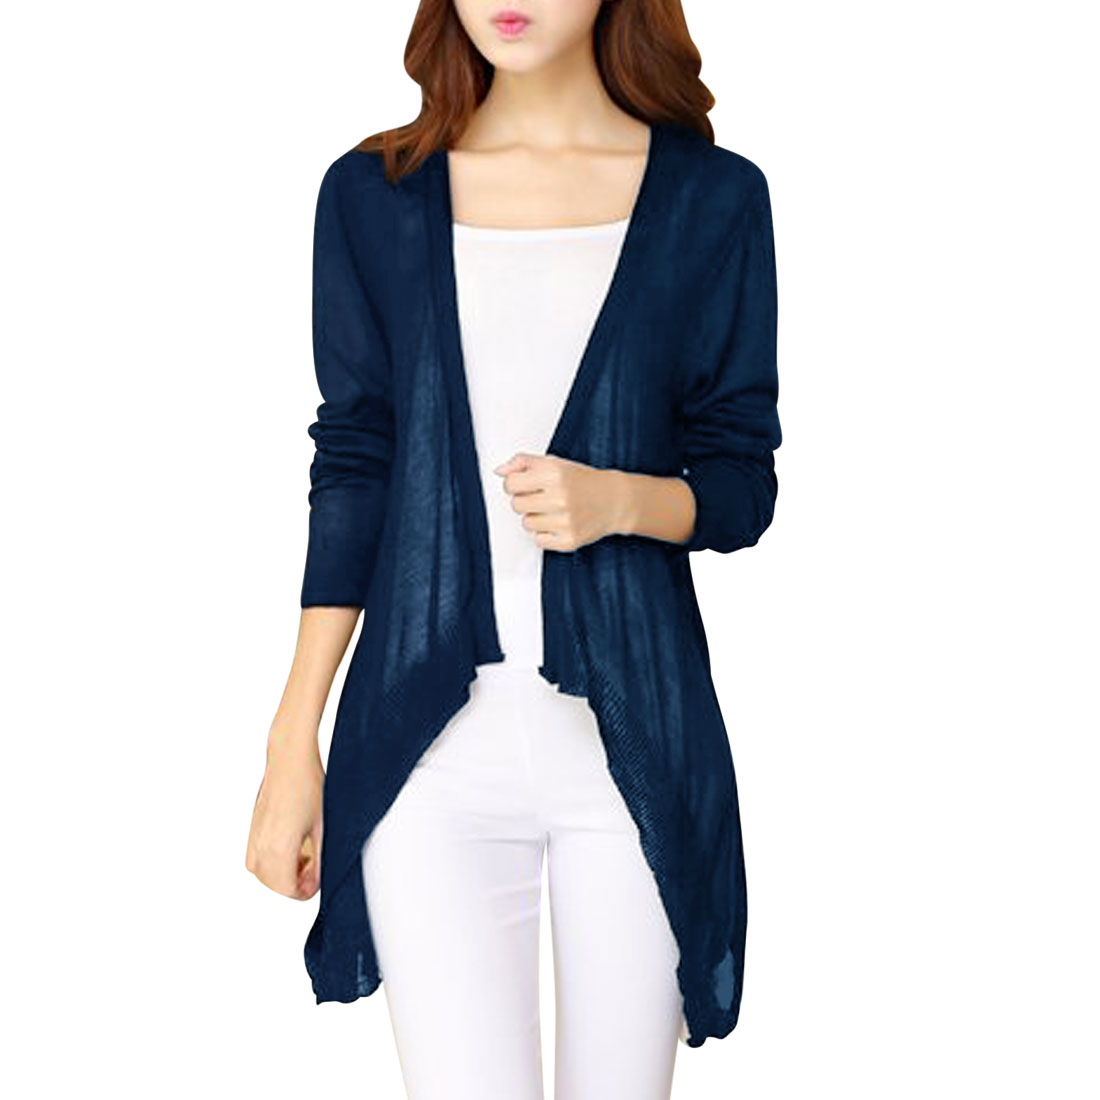 Woman Long Sleeves Opening Front Navy Blue Light Knit Cardigan XS